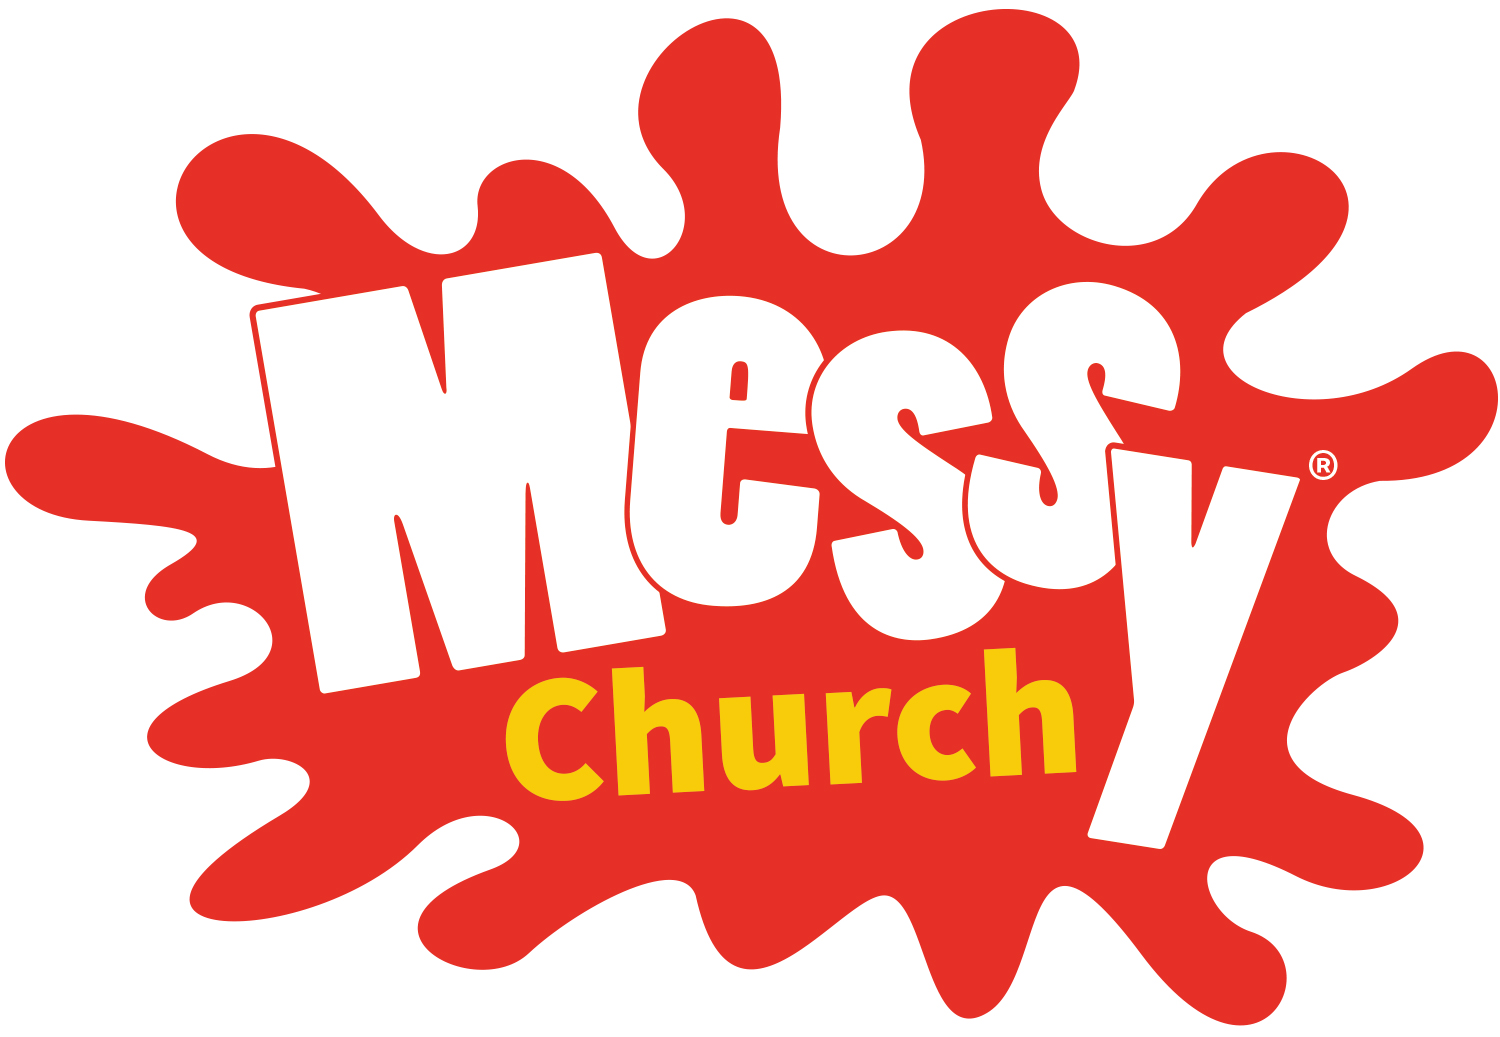 The Messy Church logo